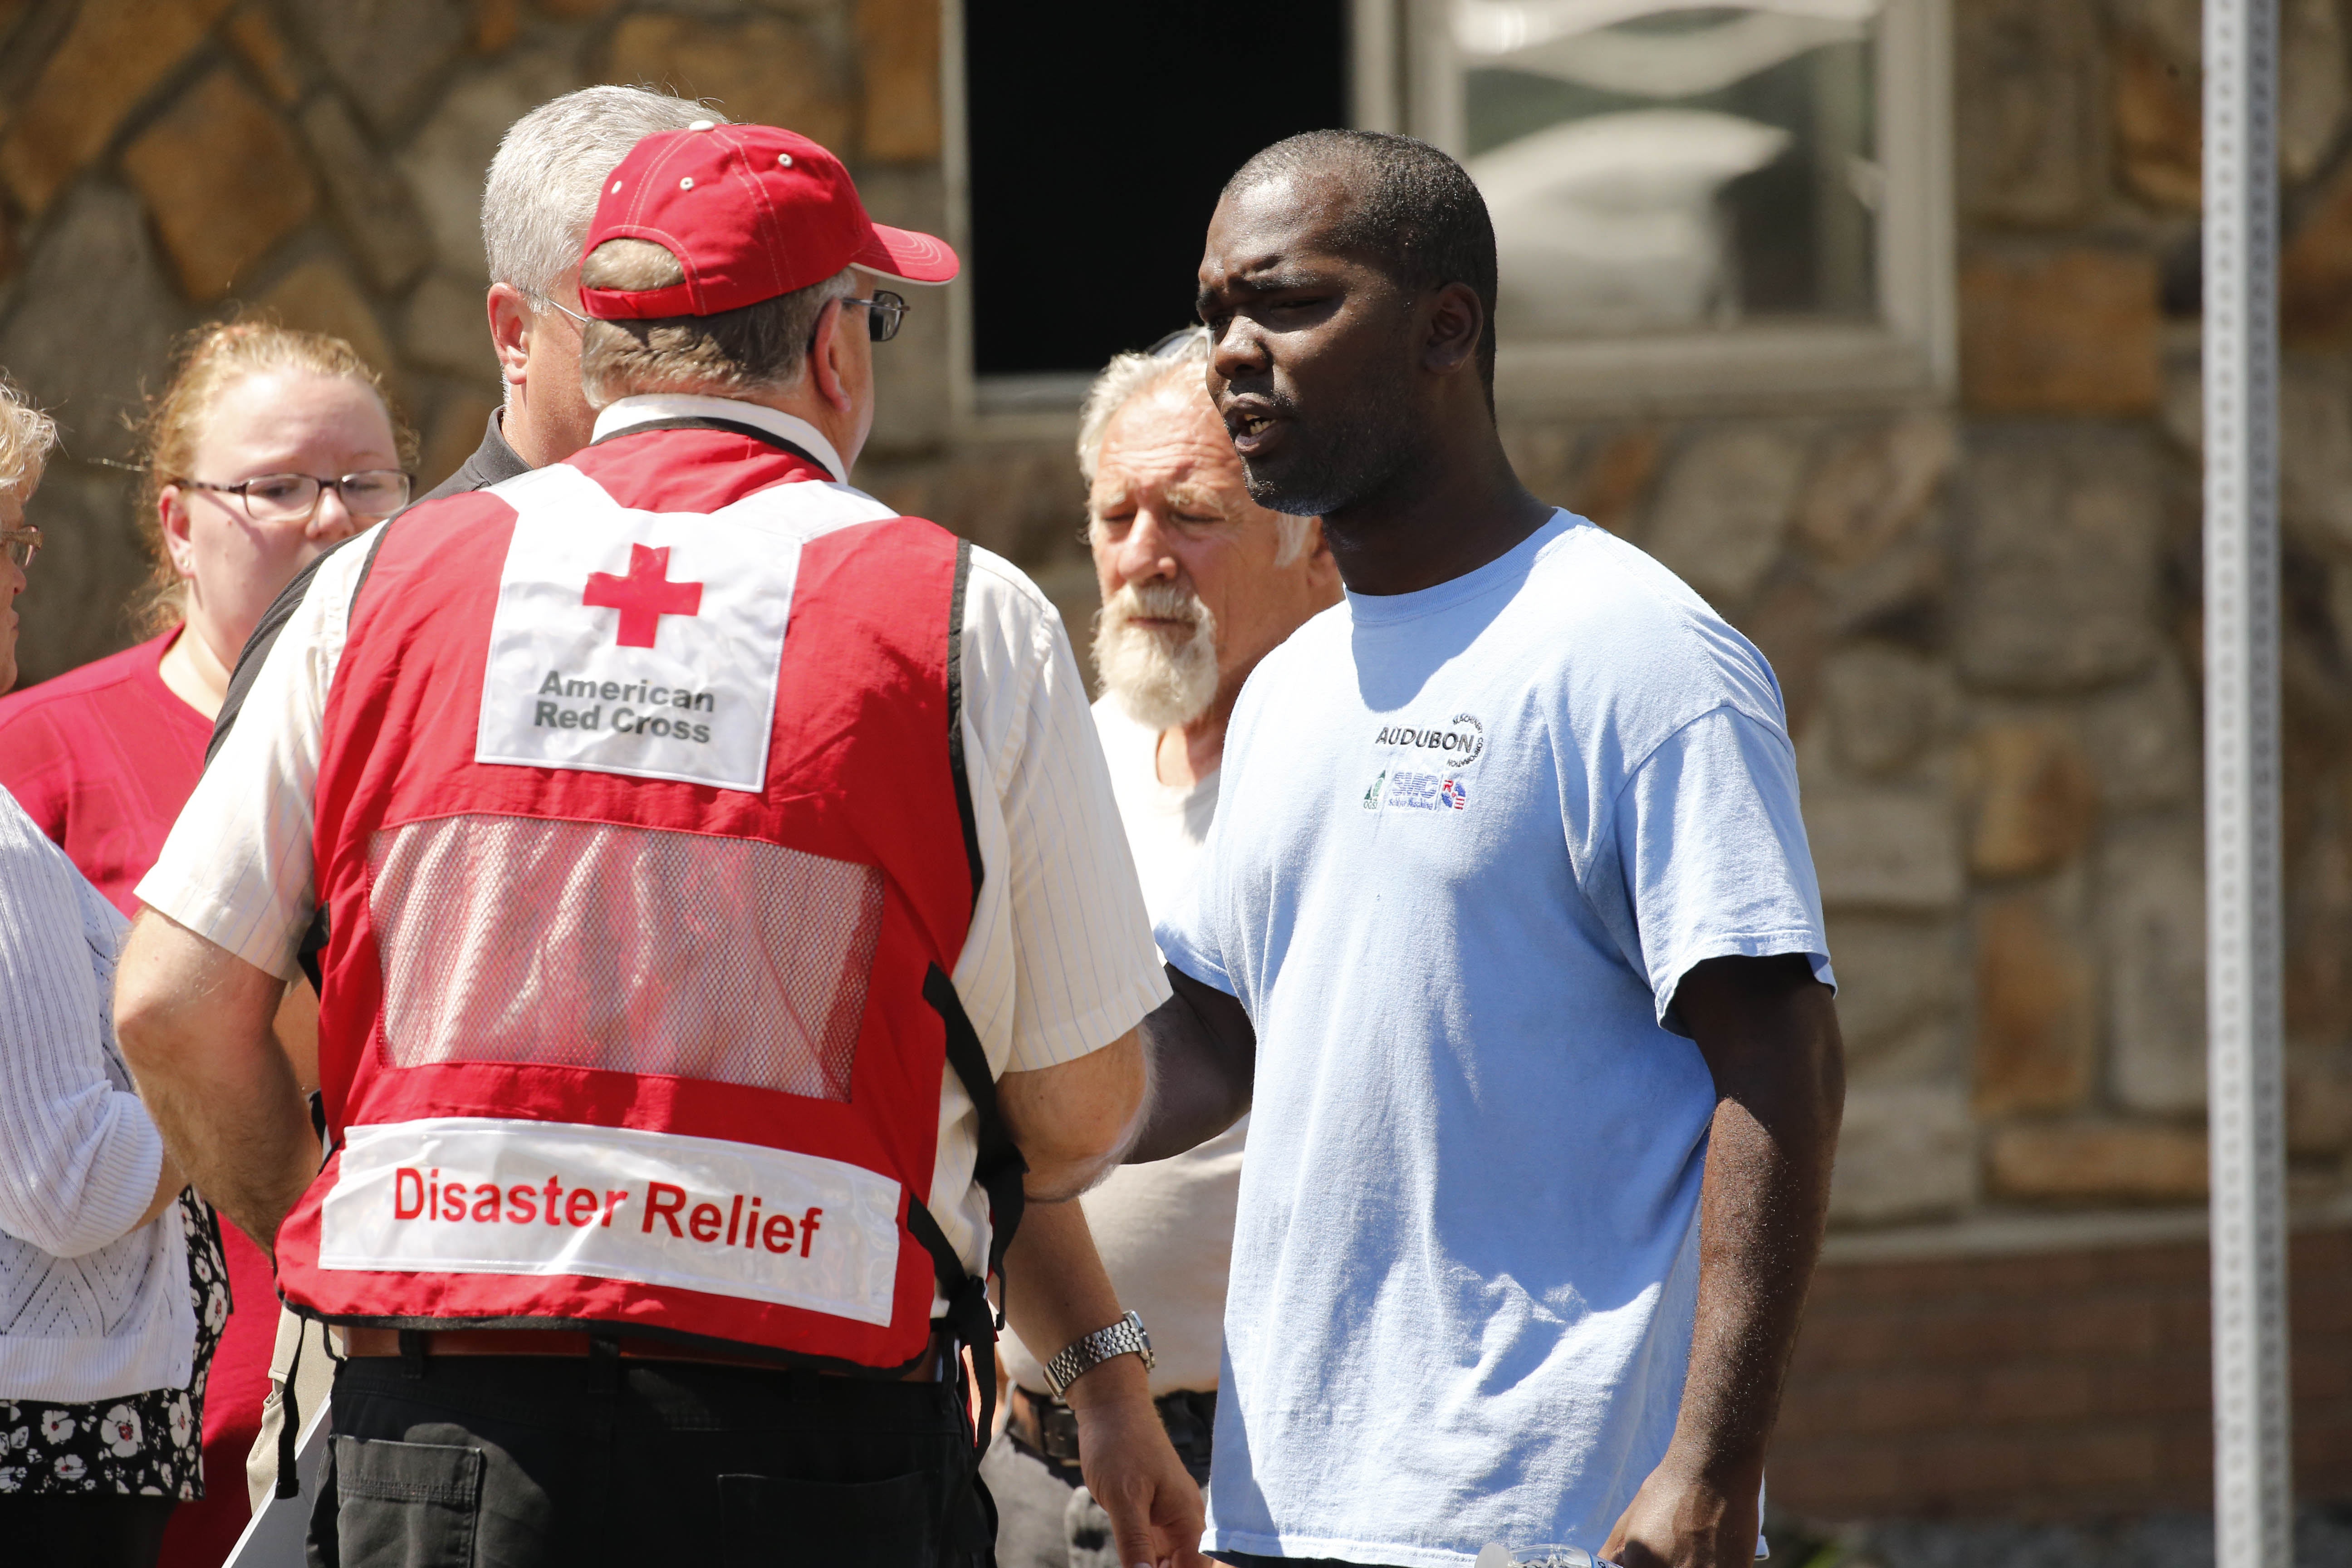 Kenneth Walker talks to a caseworker from the American Red Cross as North Tonawanda police and fire officials investigate the scene of a fire that occurred in his home Wednesday. (Derek Gee/Buffalo News)